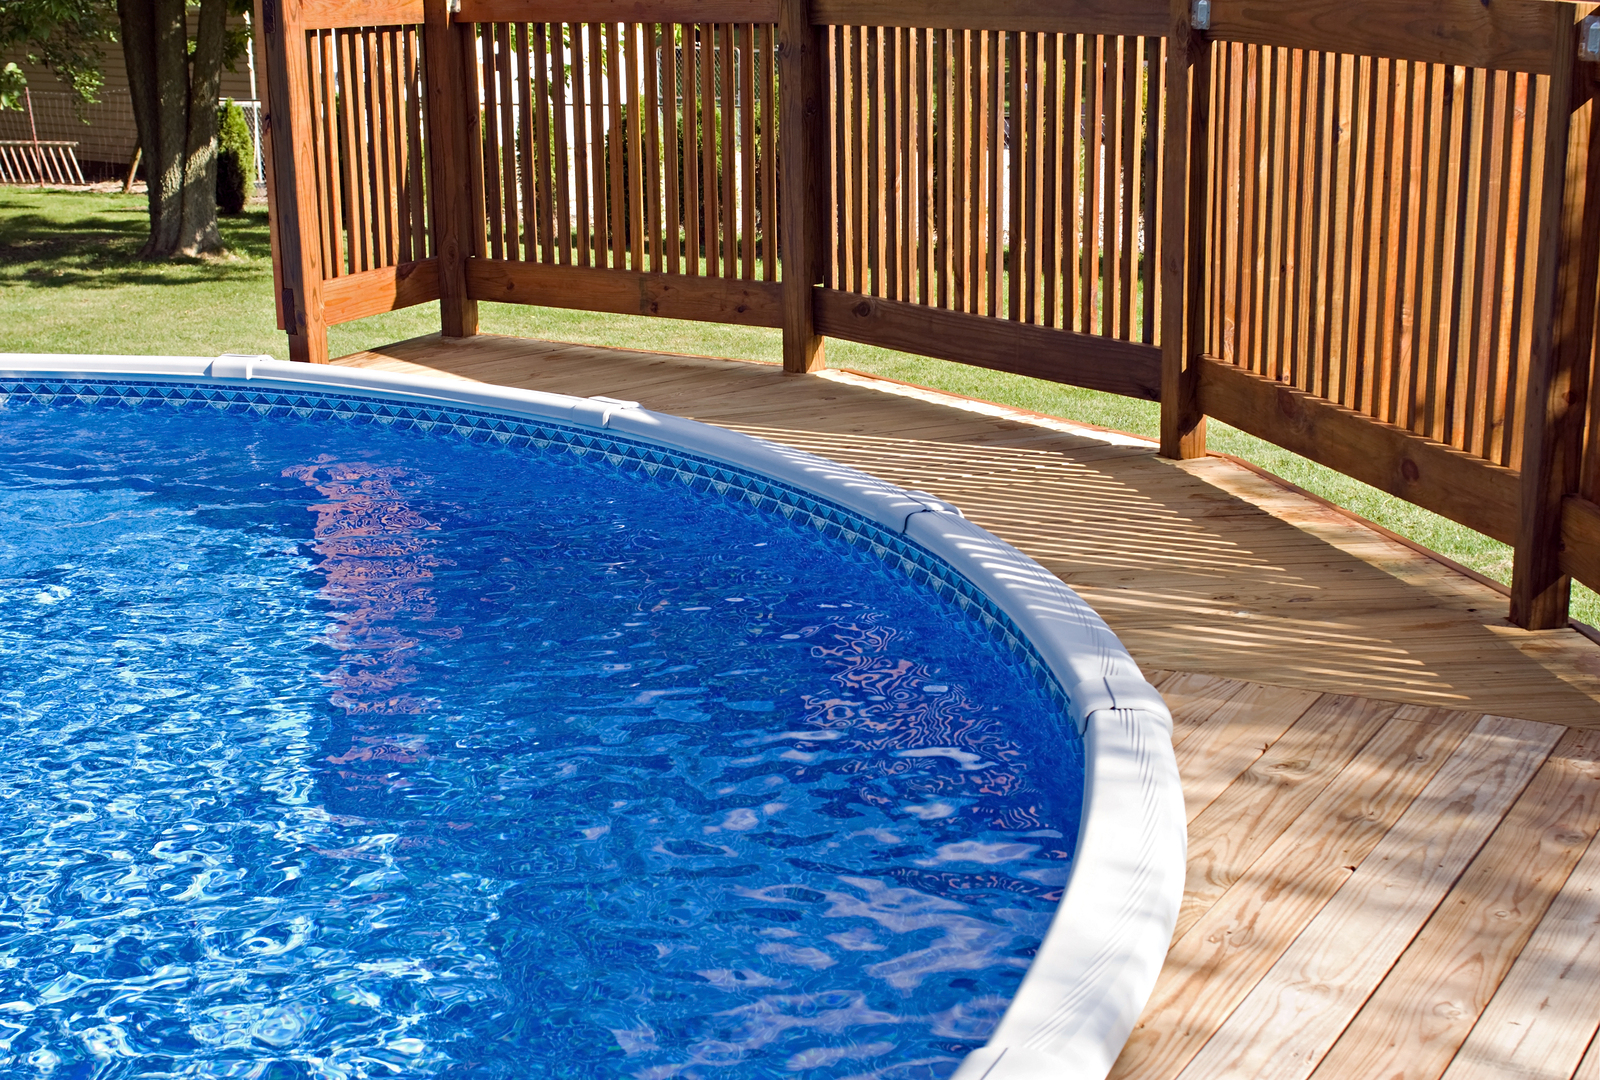 Round above-ground home pool with wooden deck and railing.